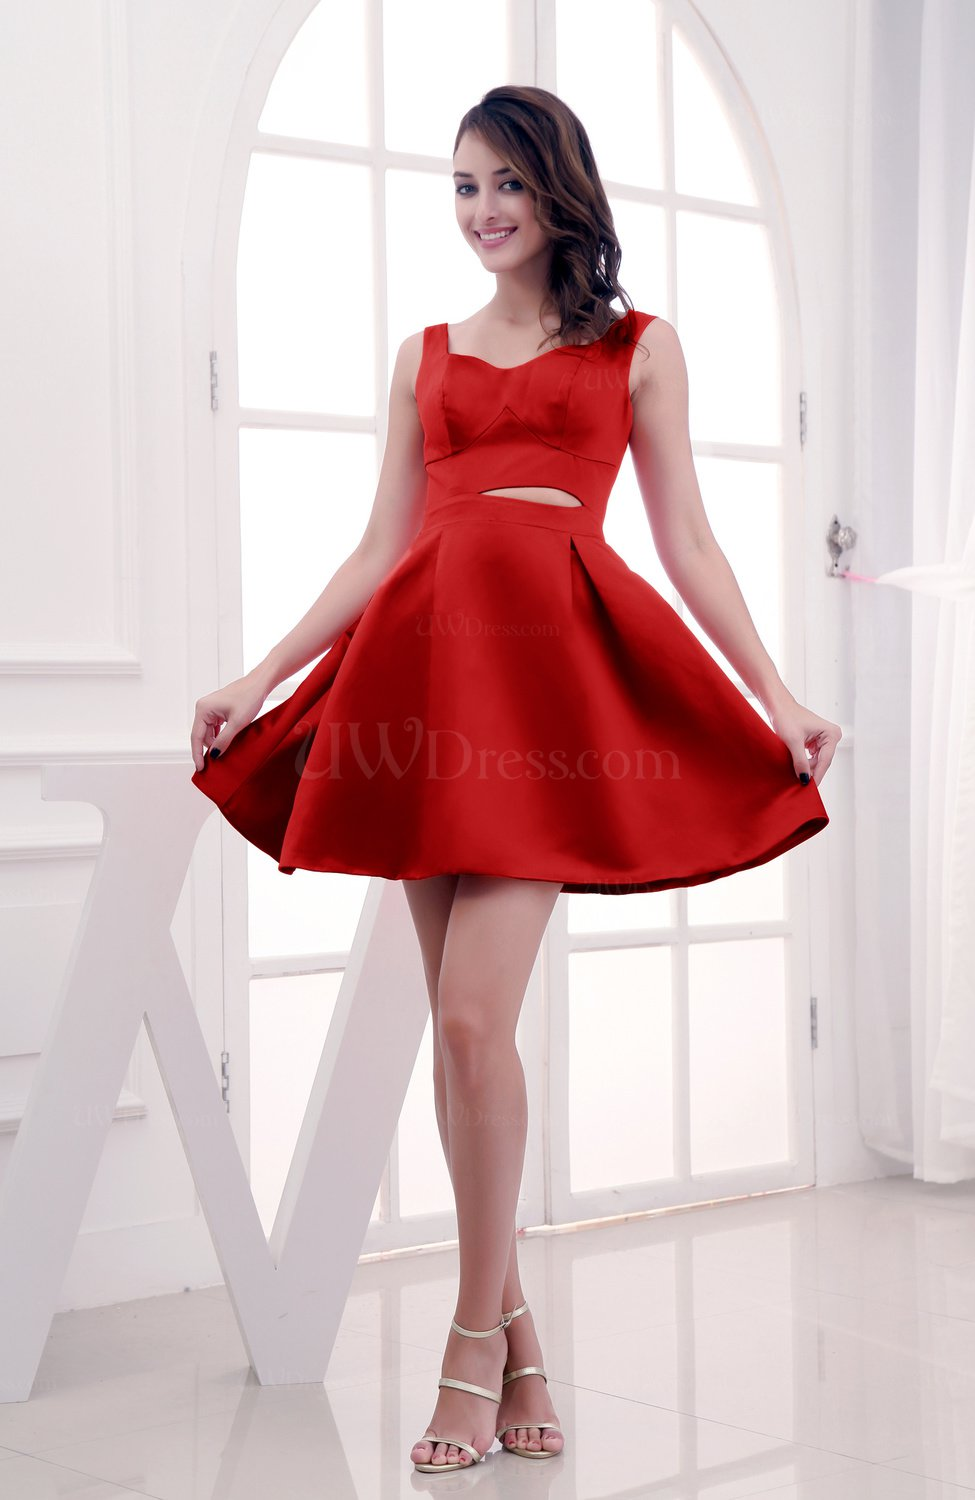 Watch - Prom red short dresses with straps video